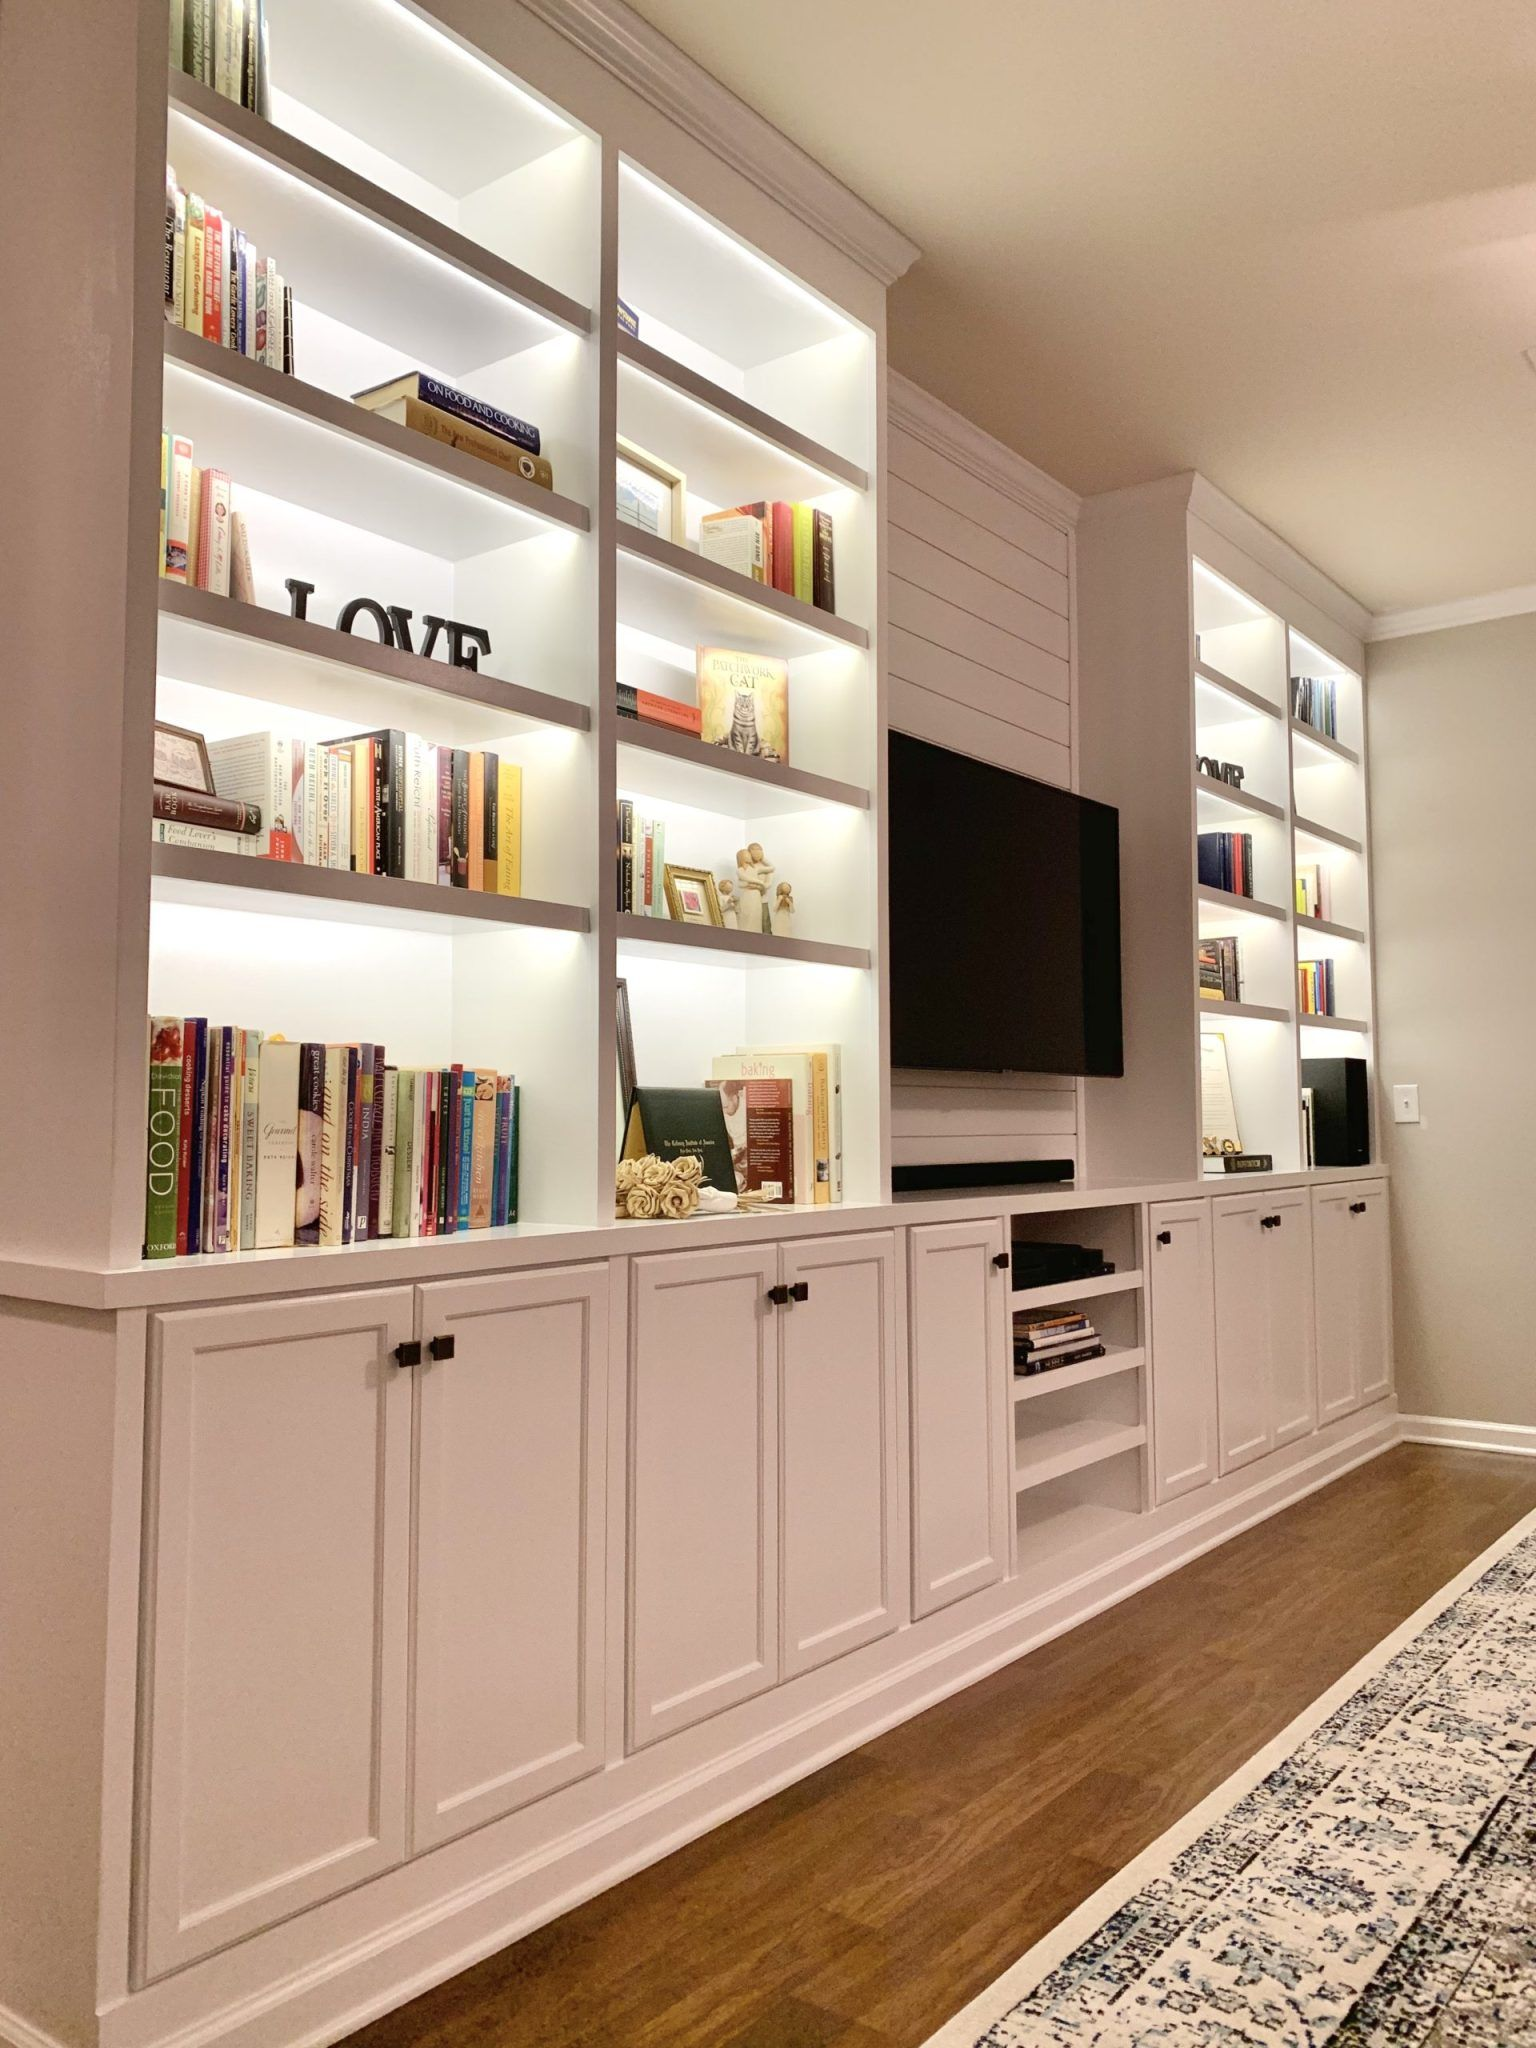 Photo of DIY Living Room Built-Ins from Prefab Cabinets – Dream It. Build It. Love It.